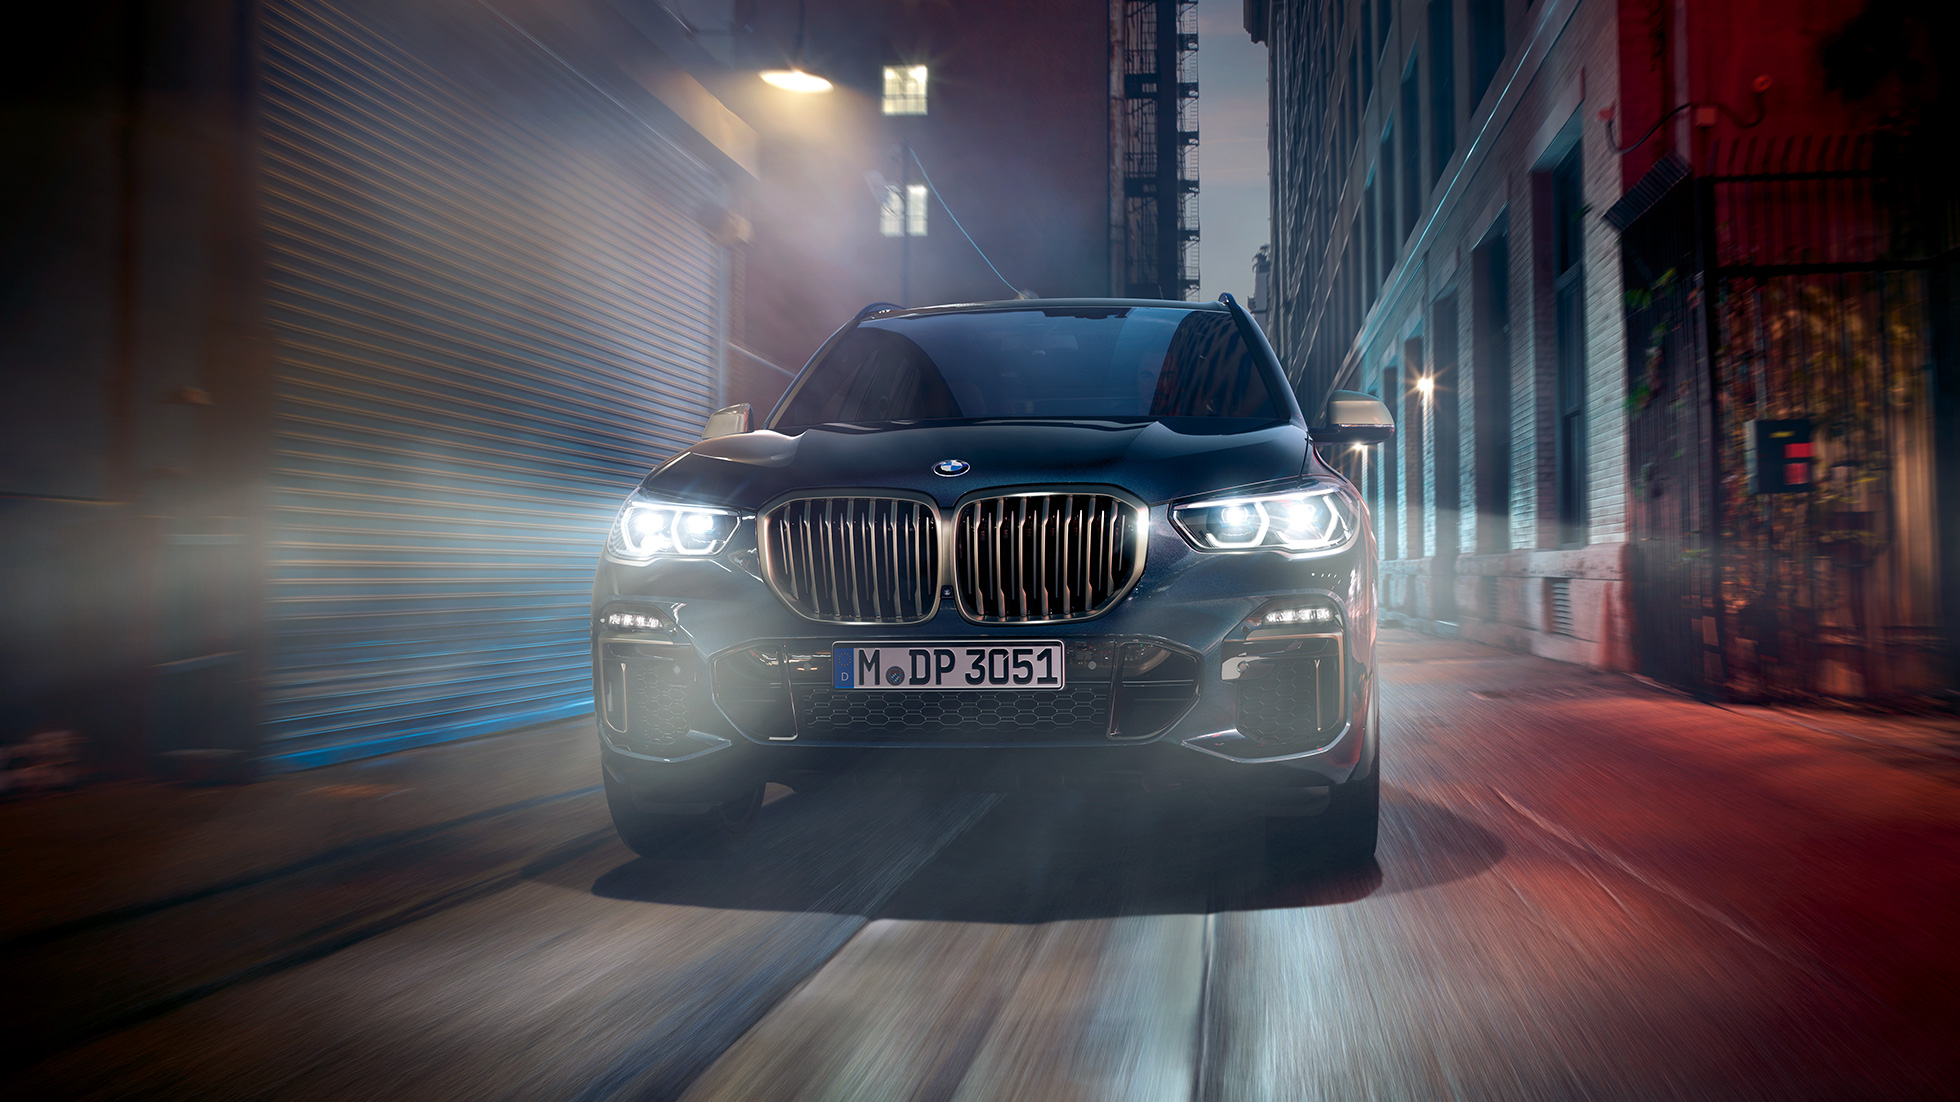 BMW kidney grille in Cerium Grey BMW X5 M50i and M50d G05 Carbon black metallic front view